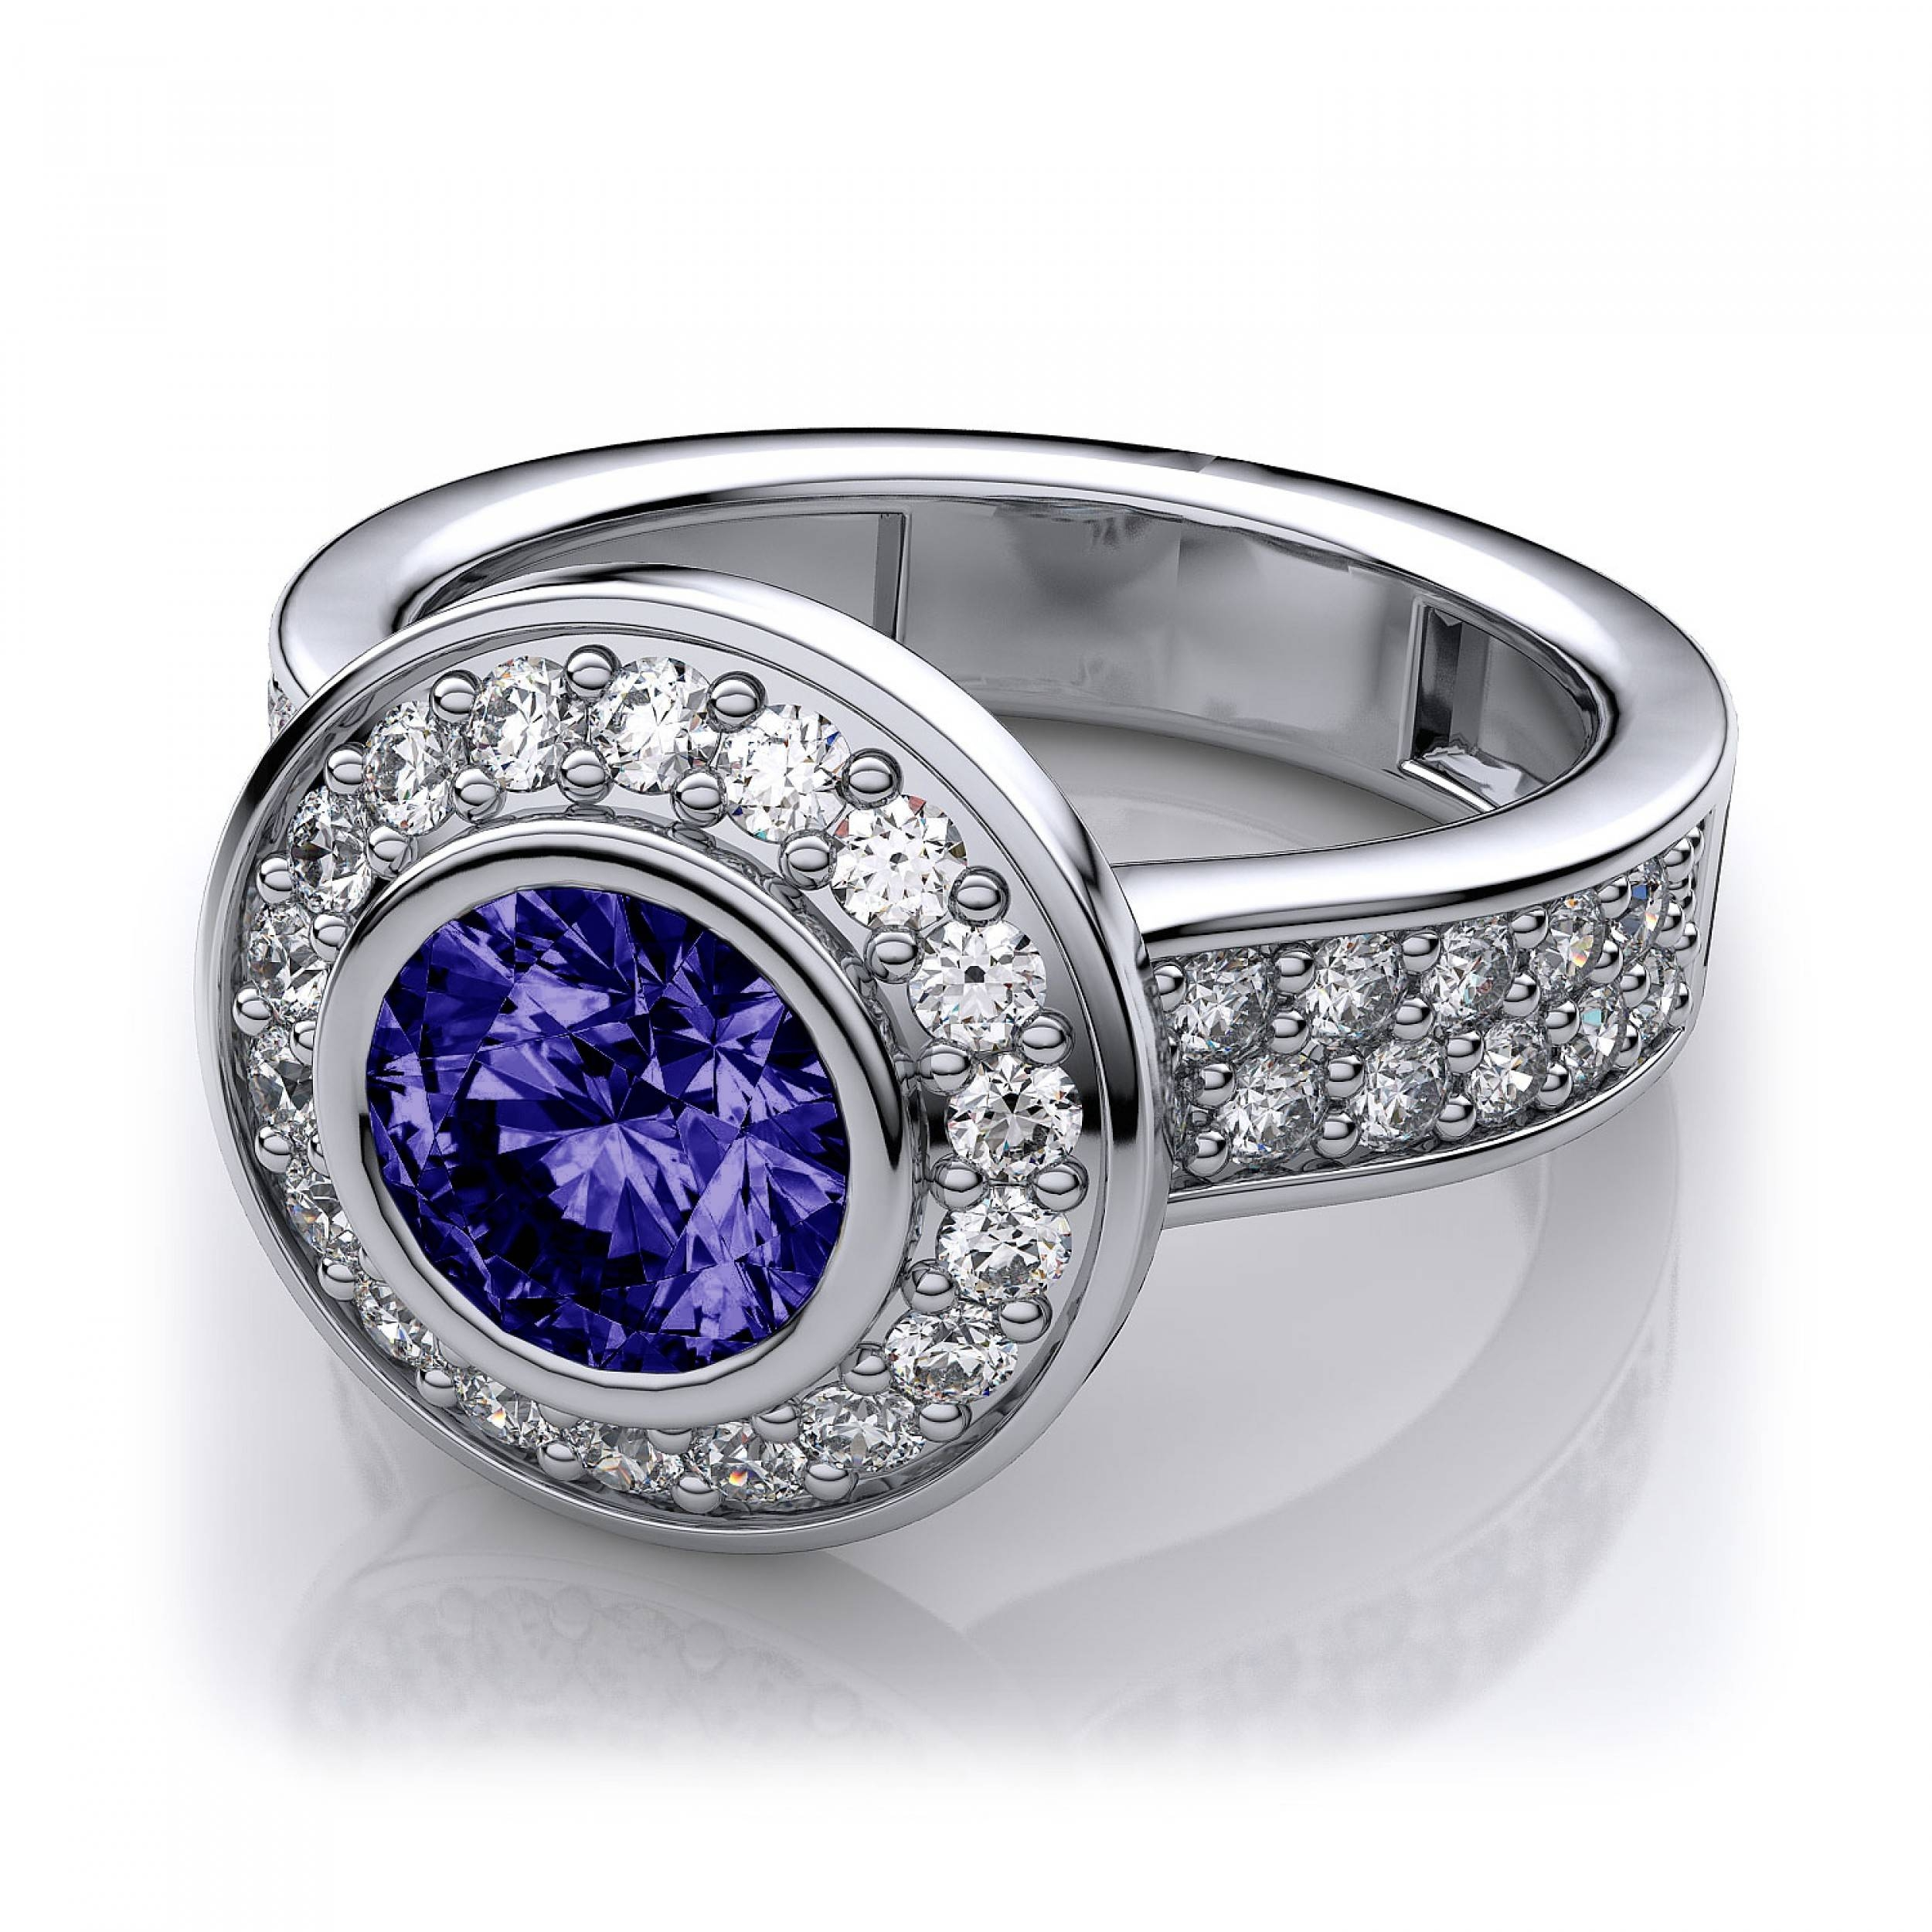 Profile Tanzanite Halo And Bezel Set Diamond Ring In 14k White Gold Intended For Tanzanite Engagement Rings With White Gold (View 3 of 15)